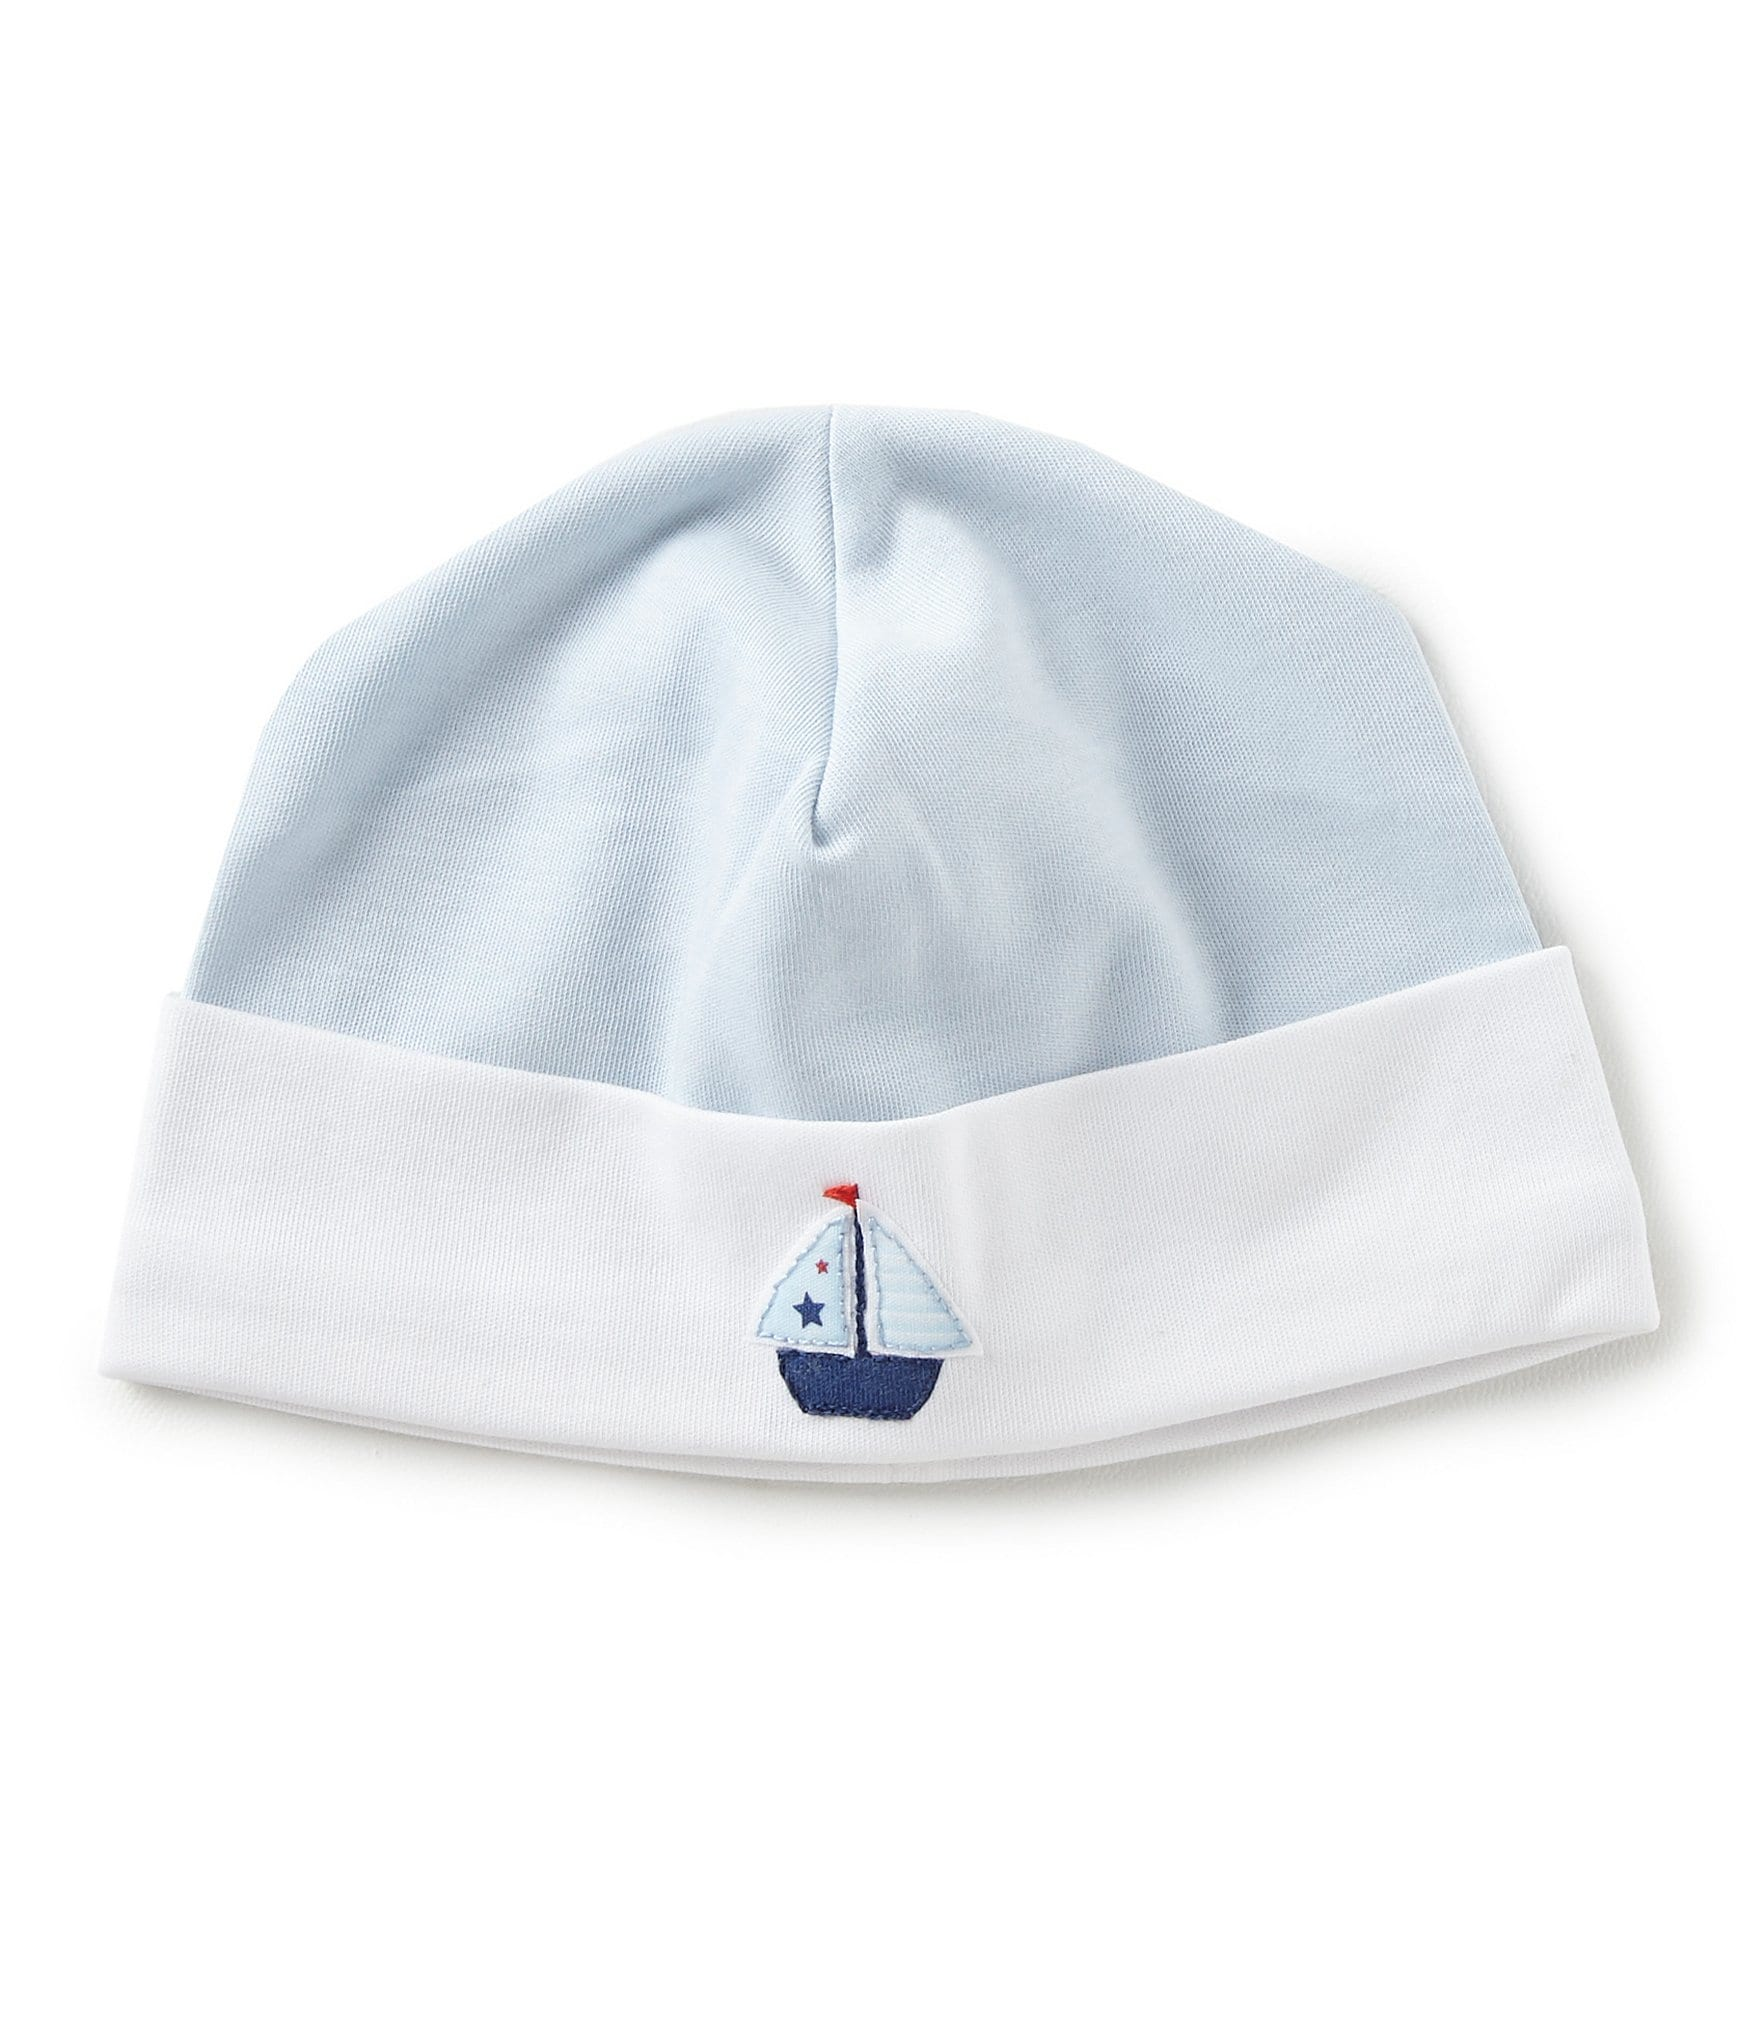 b32644ccb0099 Feltman Brothers Baby Boys Newborn Sailboat Embroidered Hat